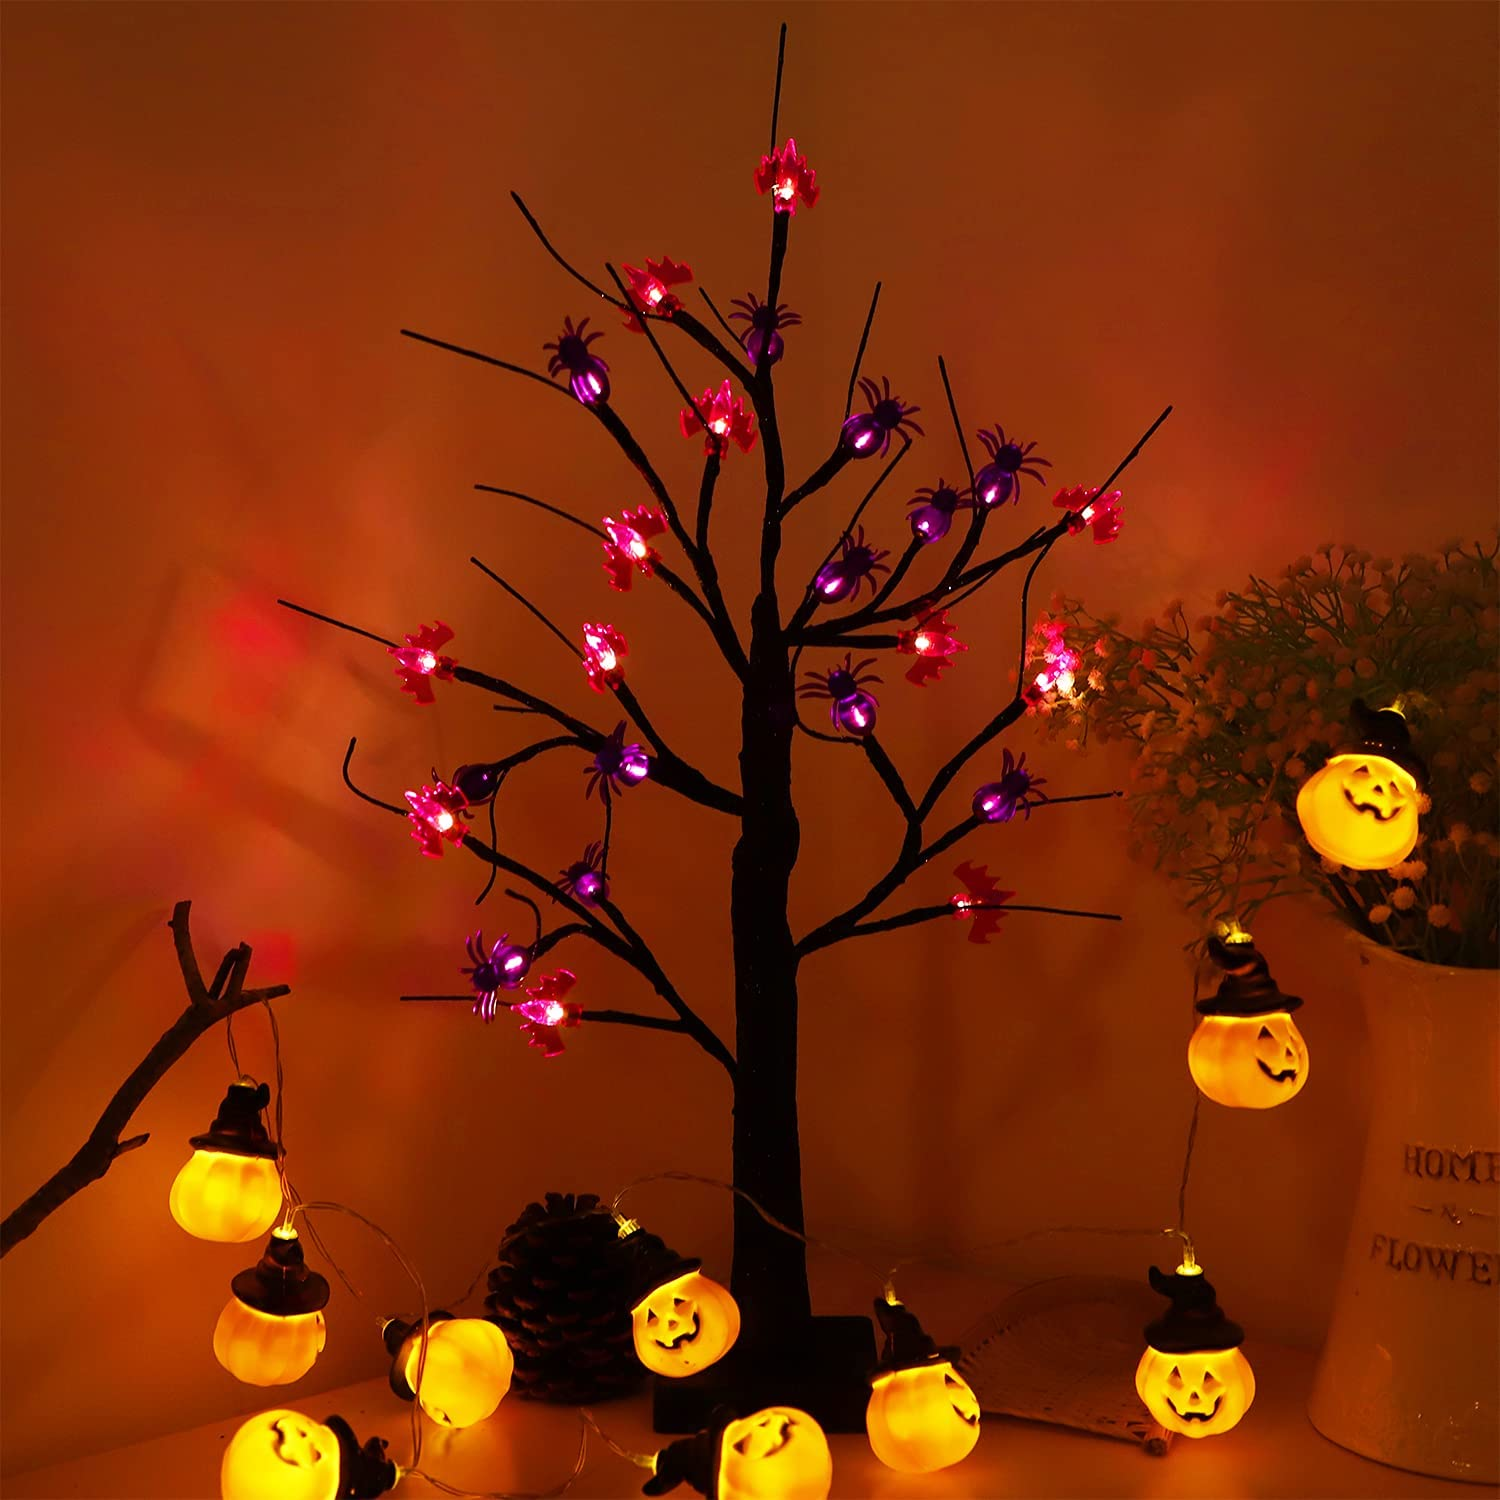 Malgero Halloween Decoration Black Tree Lamp 2FT Battery Powered with 24 LED Lights and 30 DIY Spiders/Bats Light Up Birch Gothic Home Decor Indoor Tabletop Lamp Spooky Bonsai Night Light